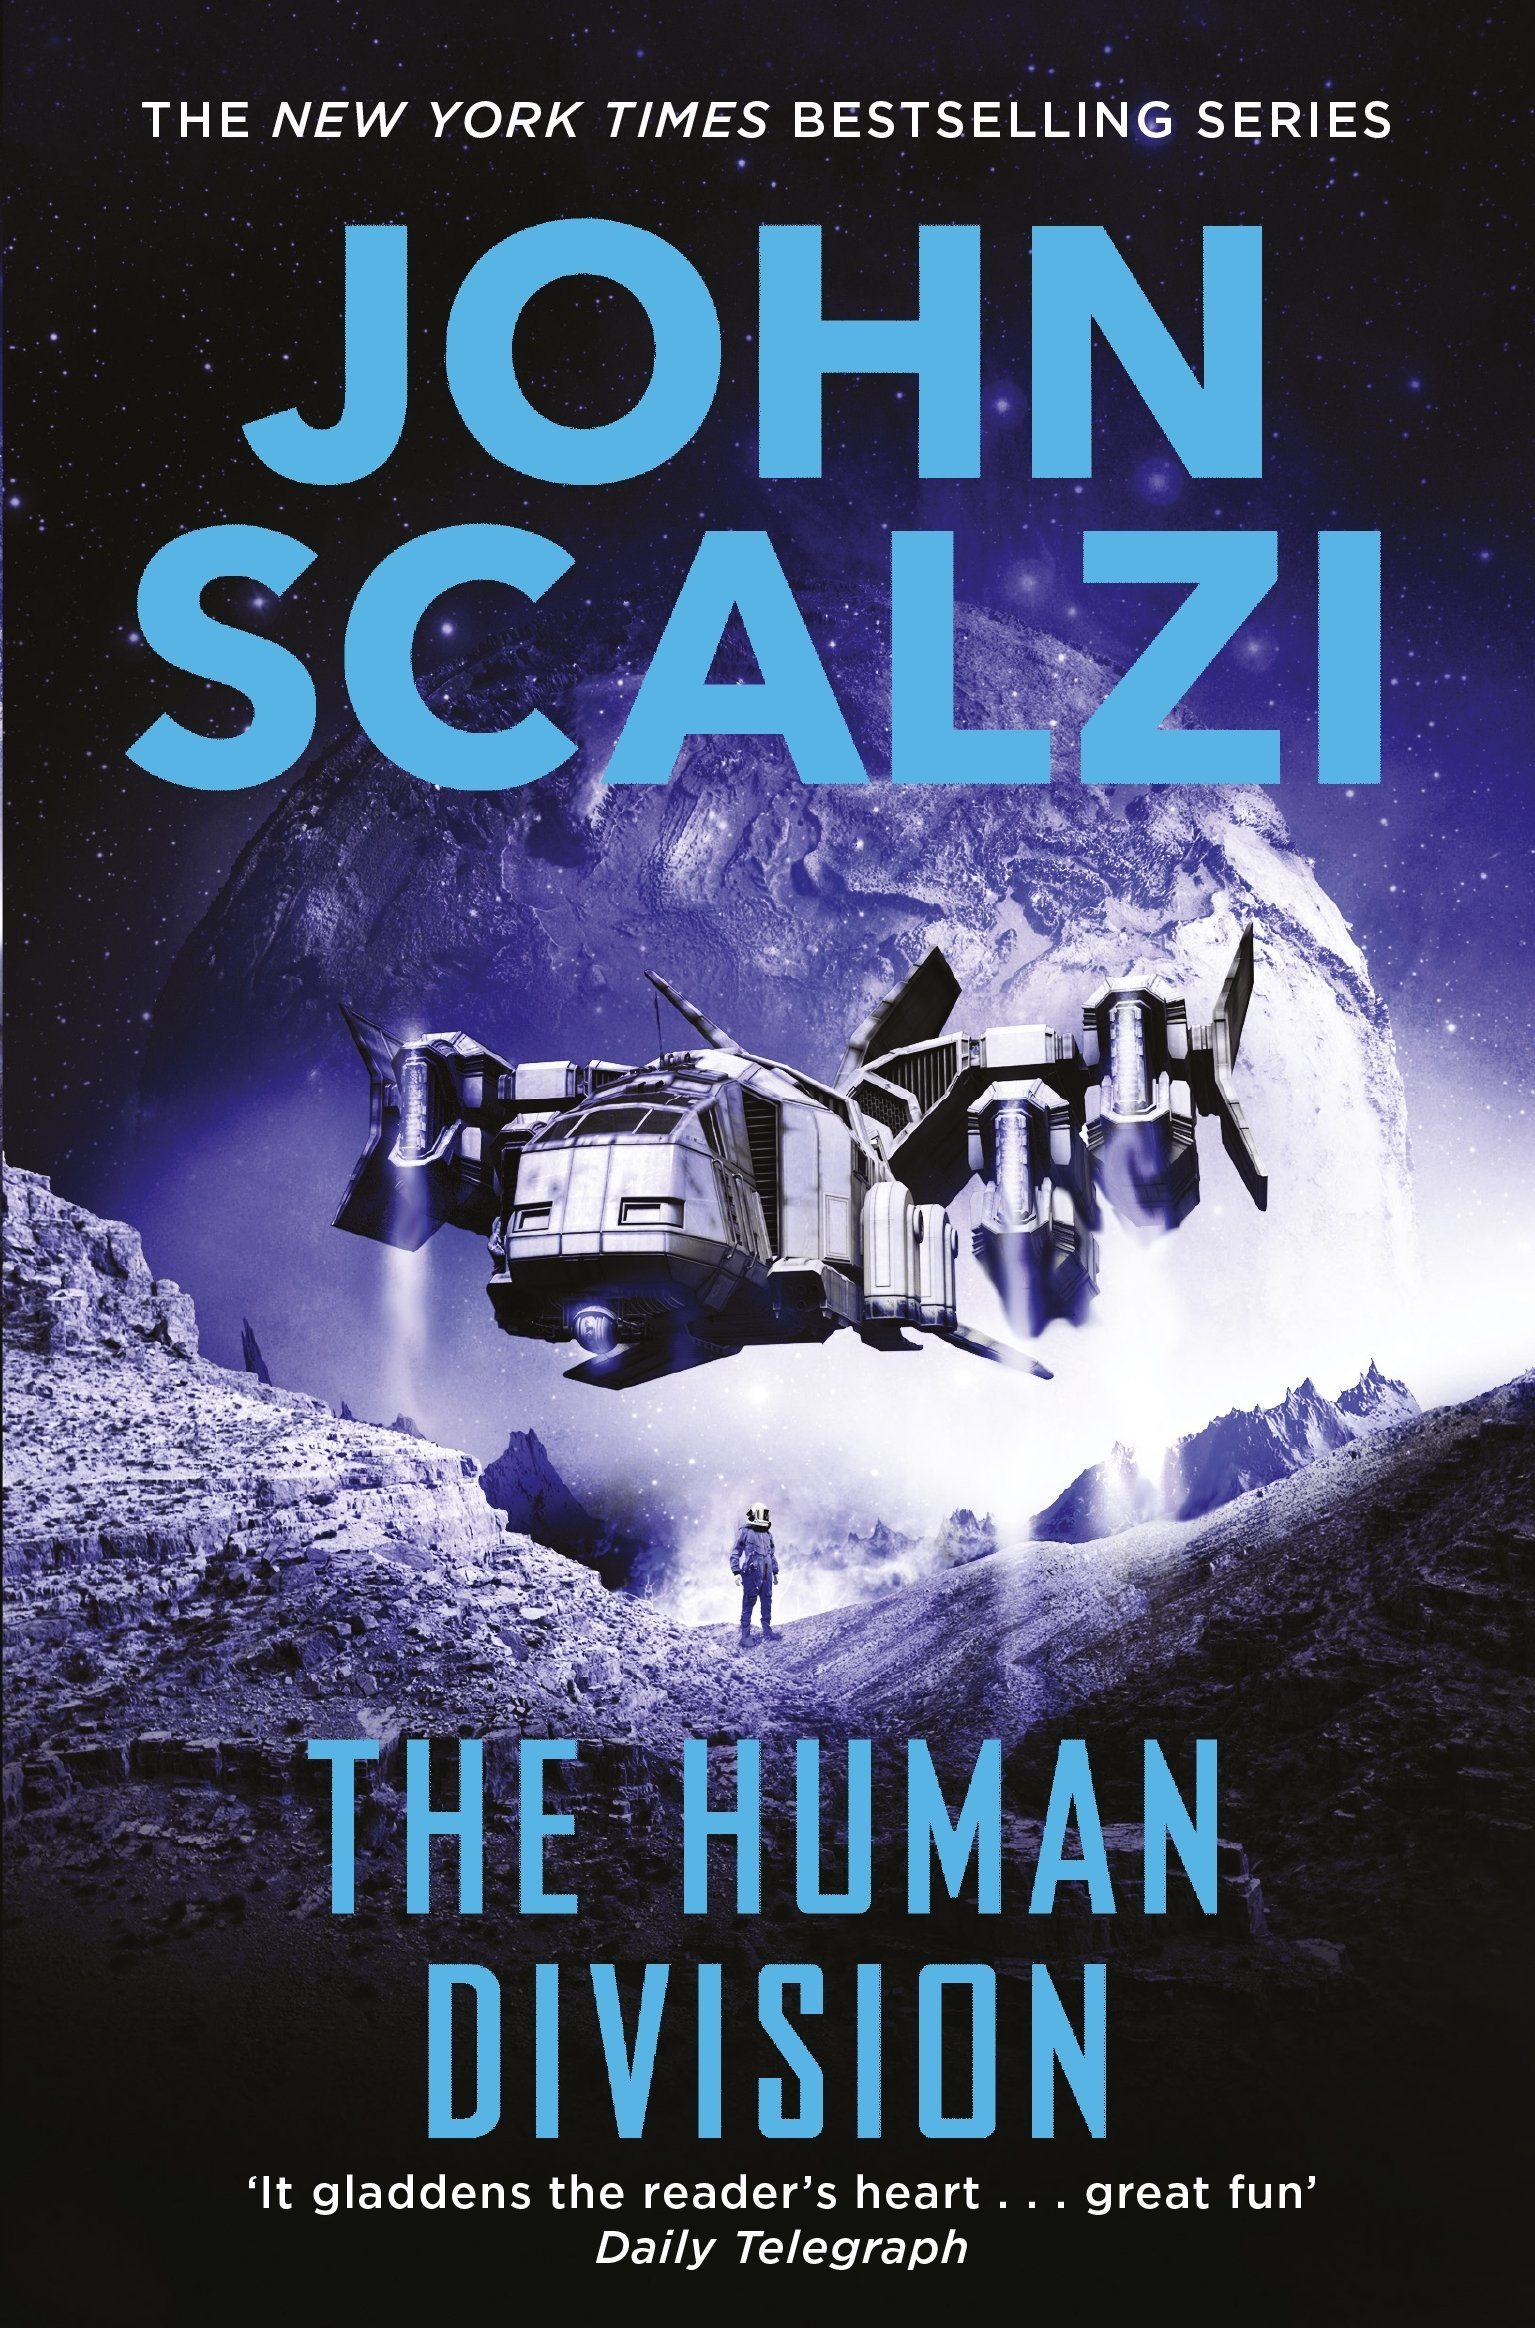 The Human Division (The Old Mans War series): Amazon.es: John Scalzi: Libros en idiomas extranjeros